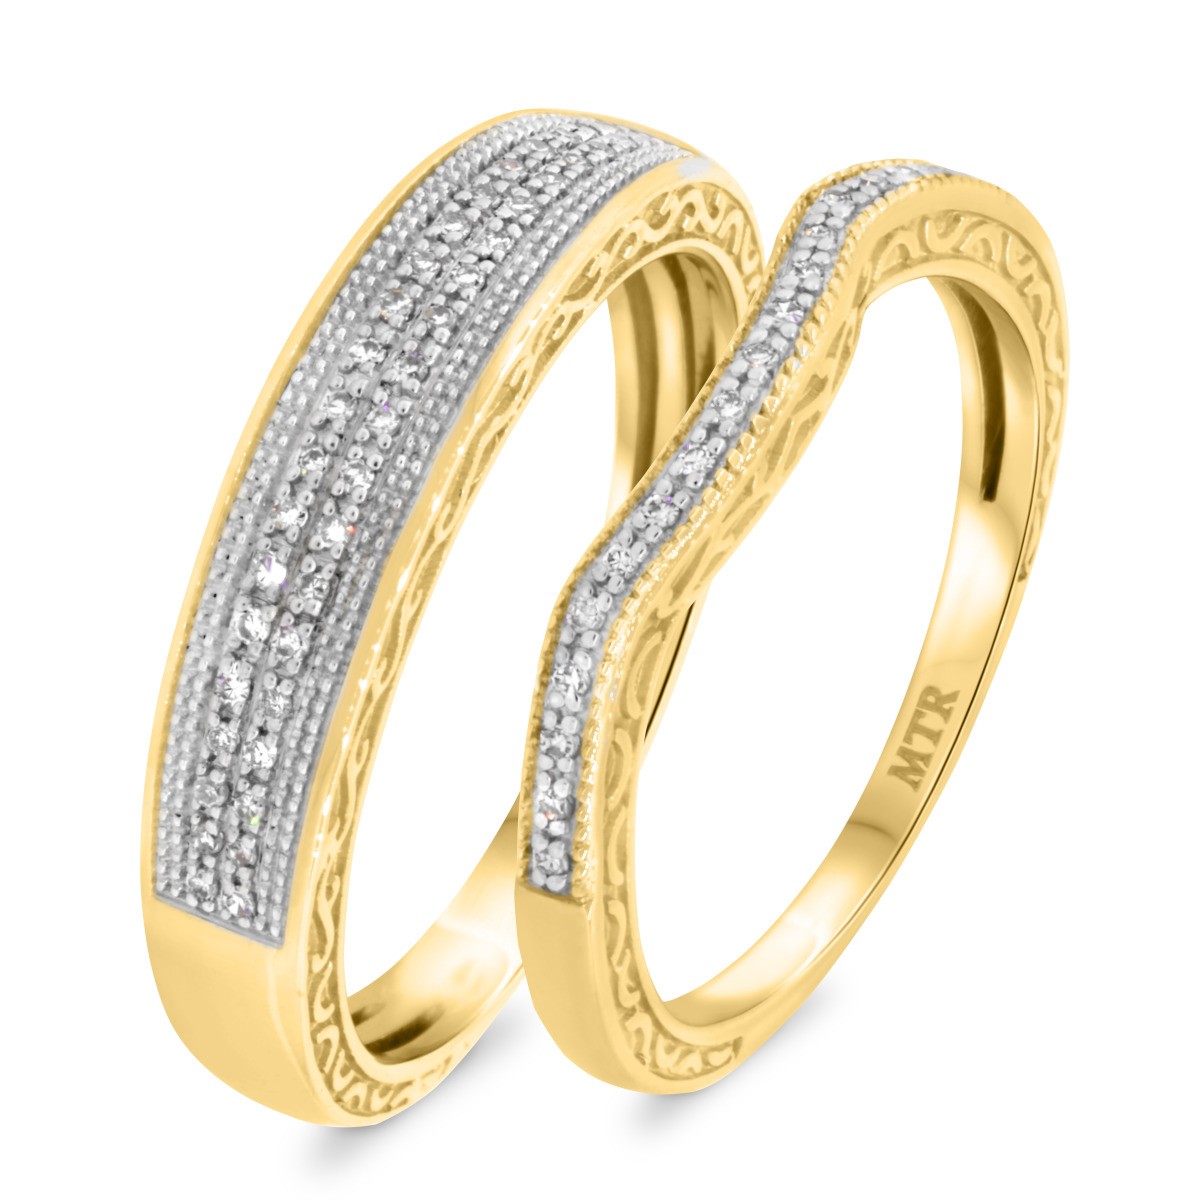 1/4 Carat T.W. Diamond Matching Wedding Band Set 10K Yellow Gold